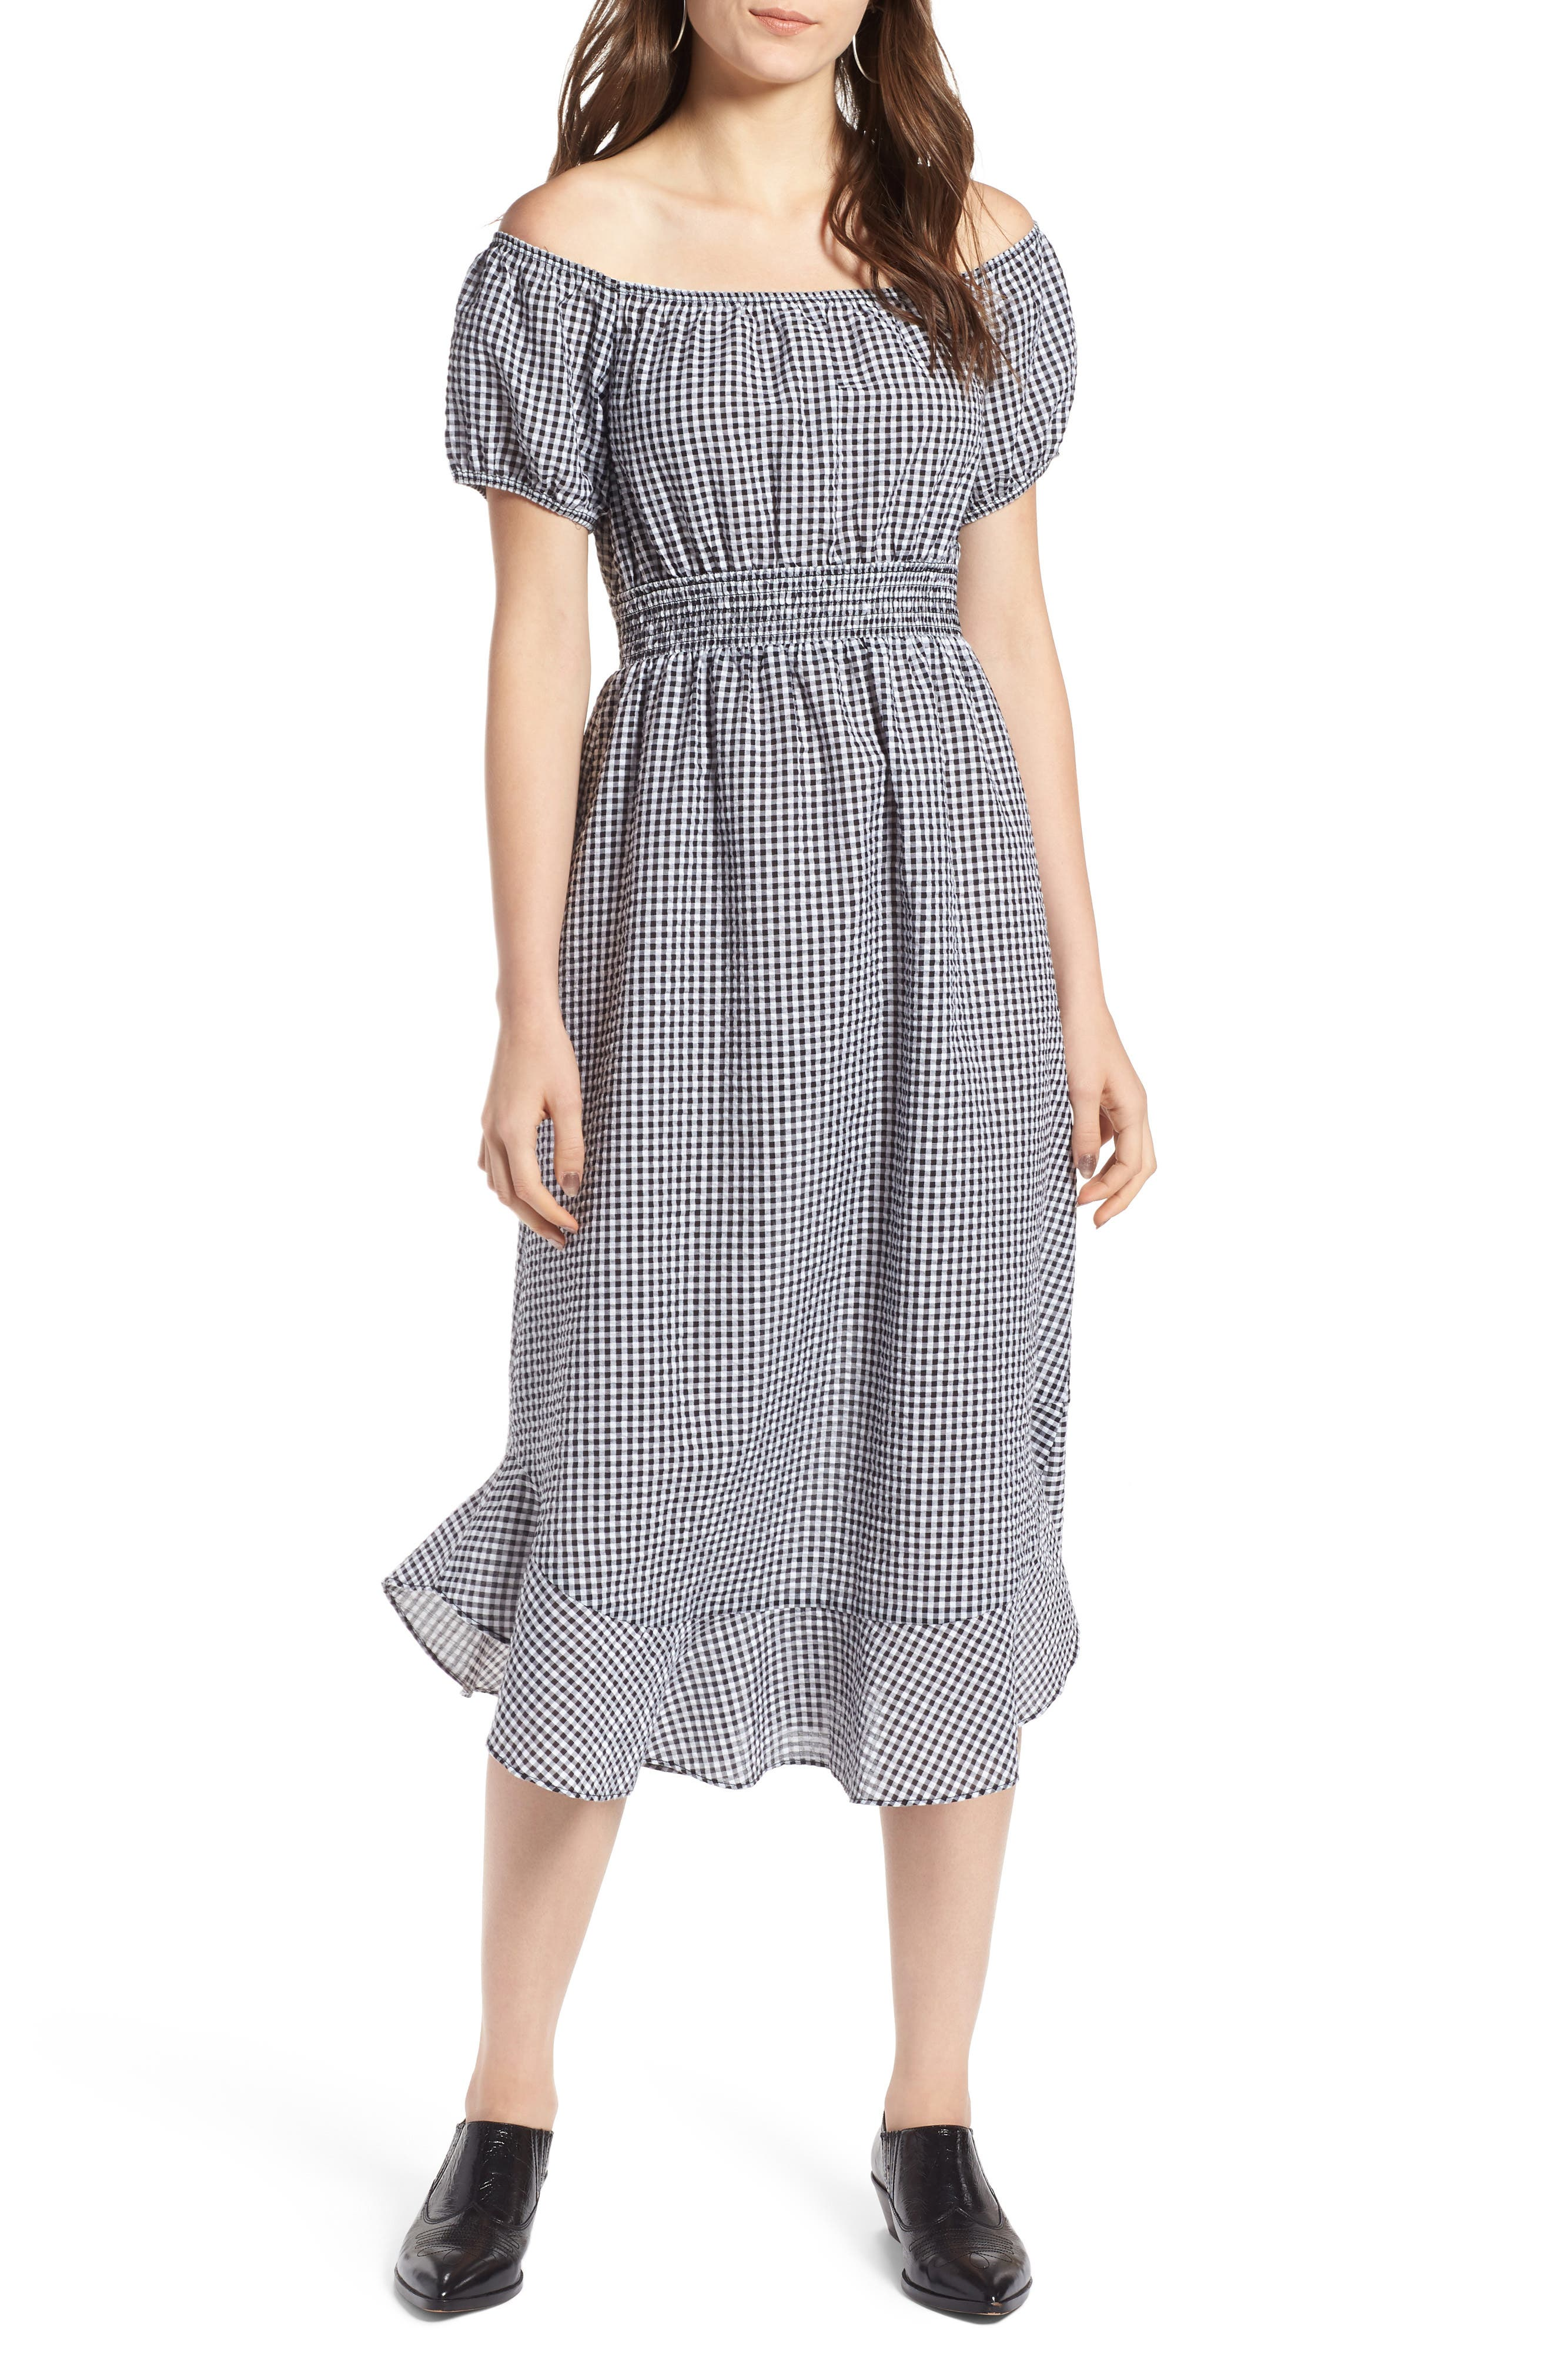 Gingham Off the Shoulder Dress,                             Main thumbnail 1, color,                             001